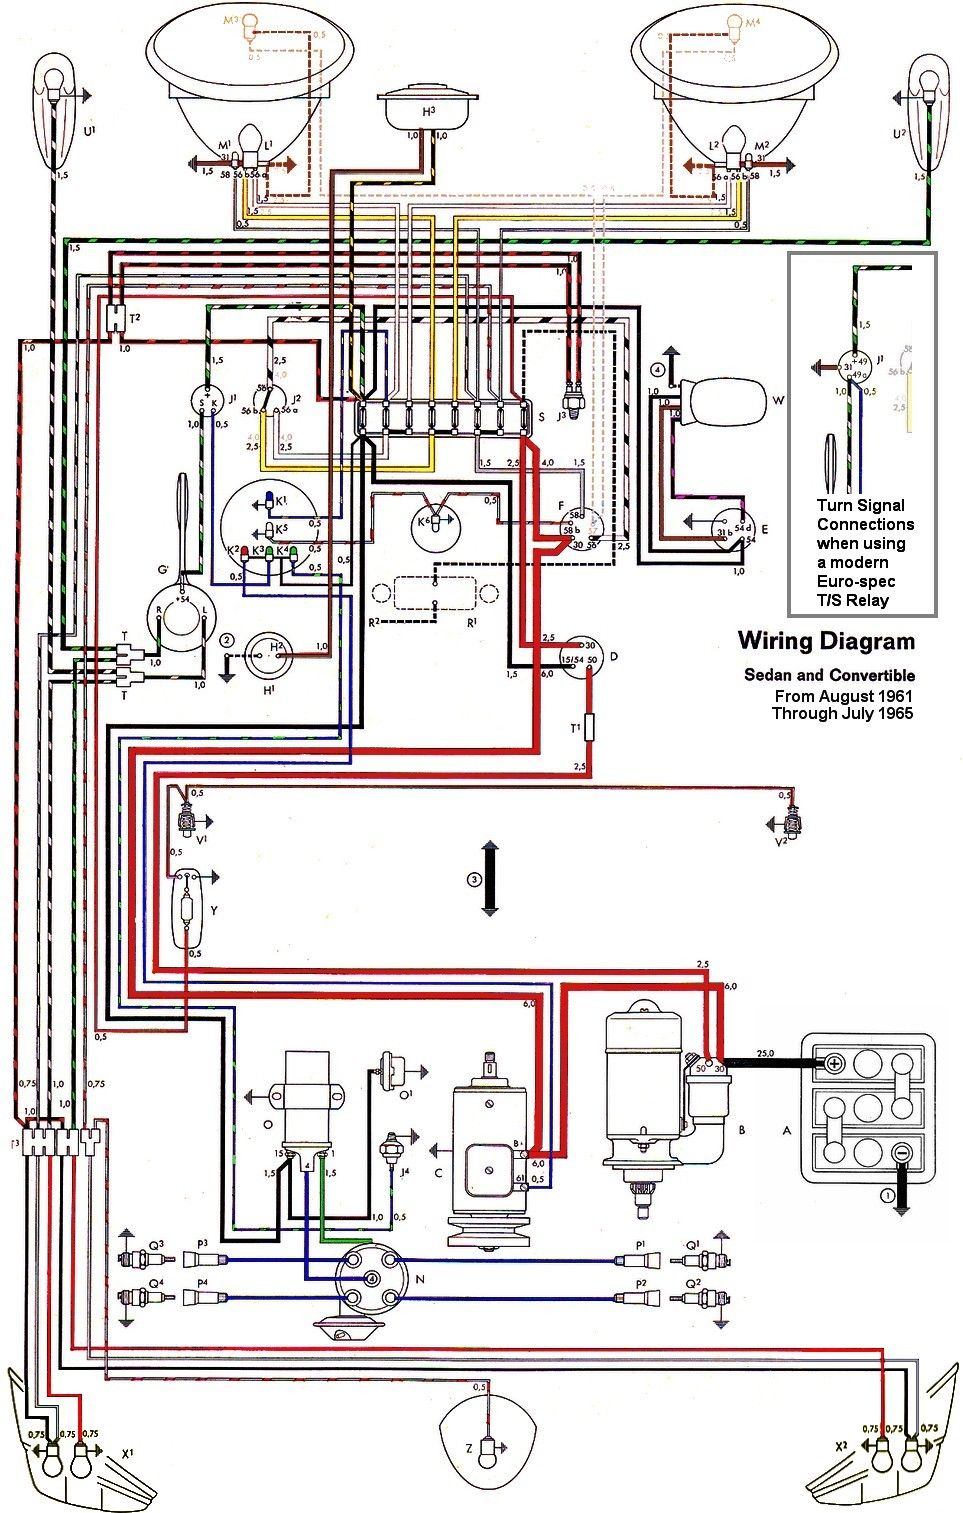 medium resolution of wiring diagram vw beetle sedan and convertible 1961 1965 vw vw vw beetle harness vw beetle wiring